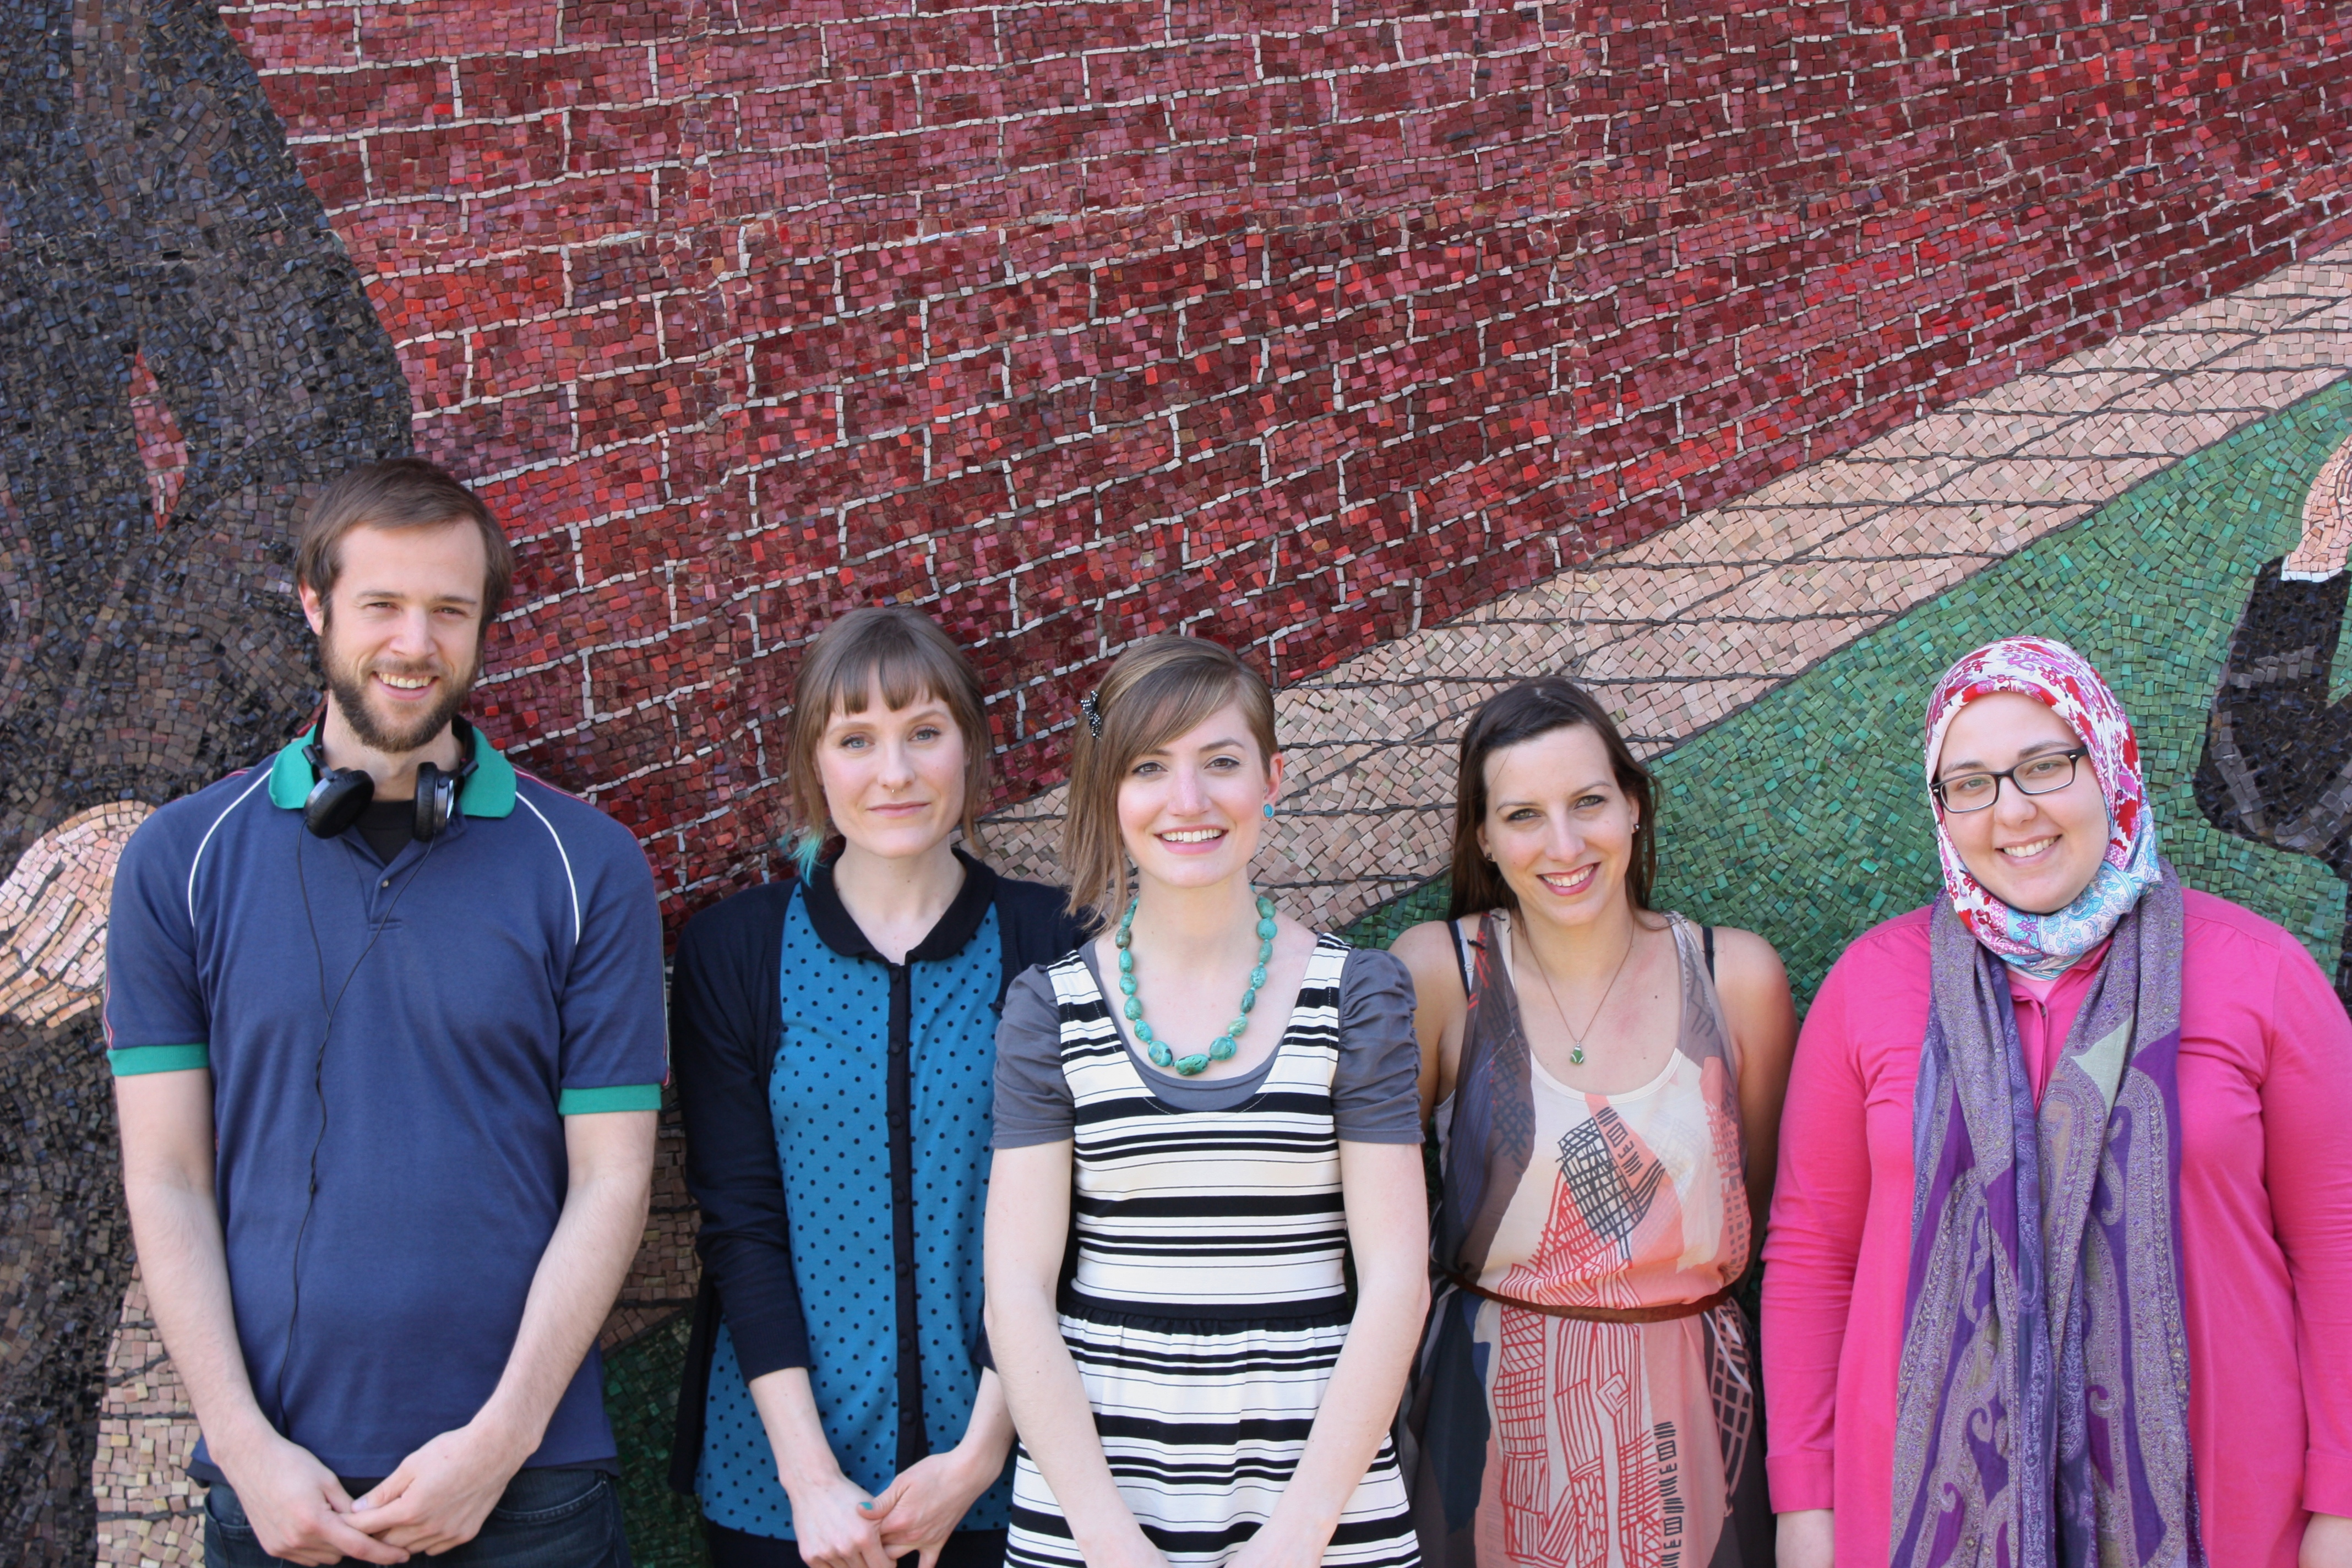 Image of the TRL podcasting group. In order from left to right, Ben, Jana, Allison, Karrieann, and Tamara stand in front of a mural that depicts red bricks, a sidewalk, and green grass.